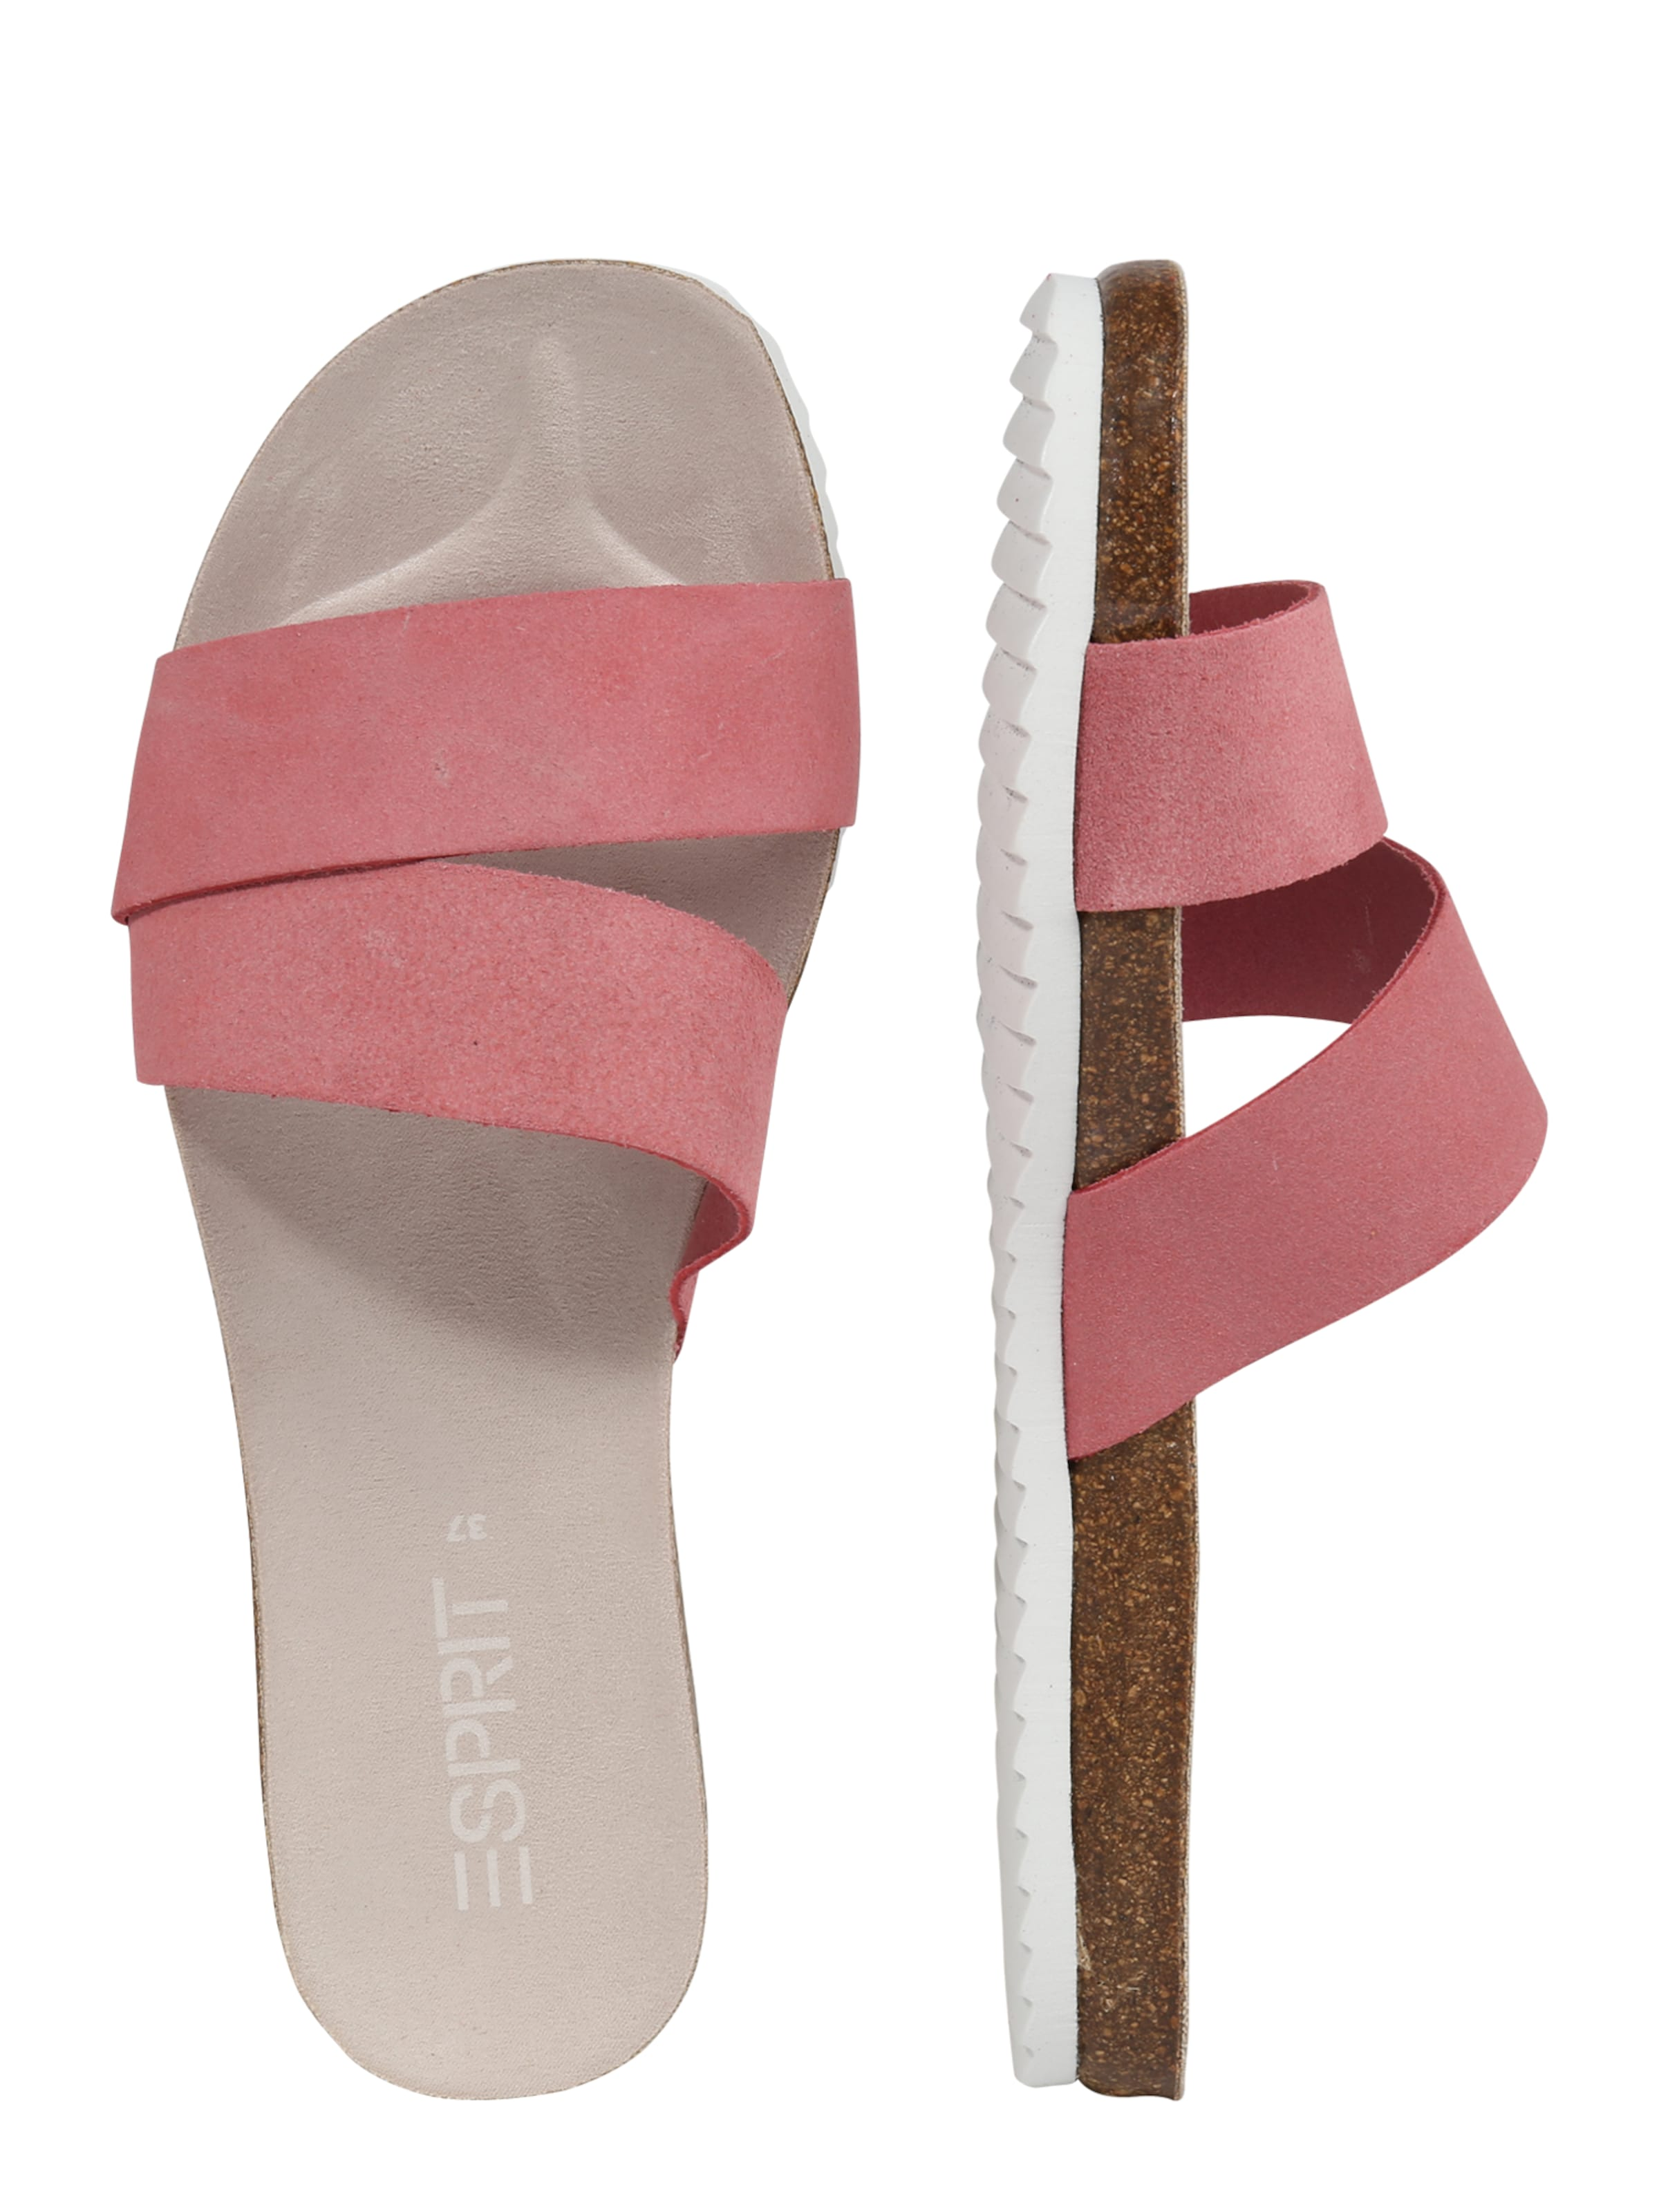 In Slipper Esprit 'kendal' Pink Slipper Pink In Slipper Esprit Esprit 'kendal' 8PNnOkZwX0